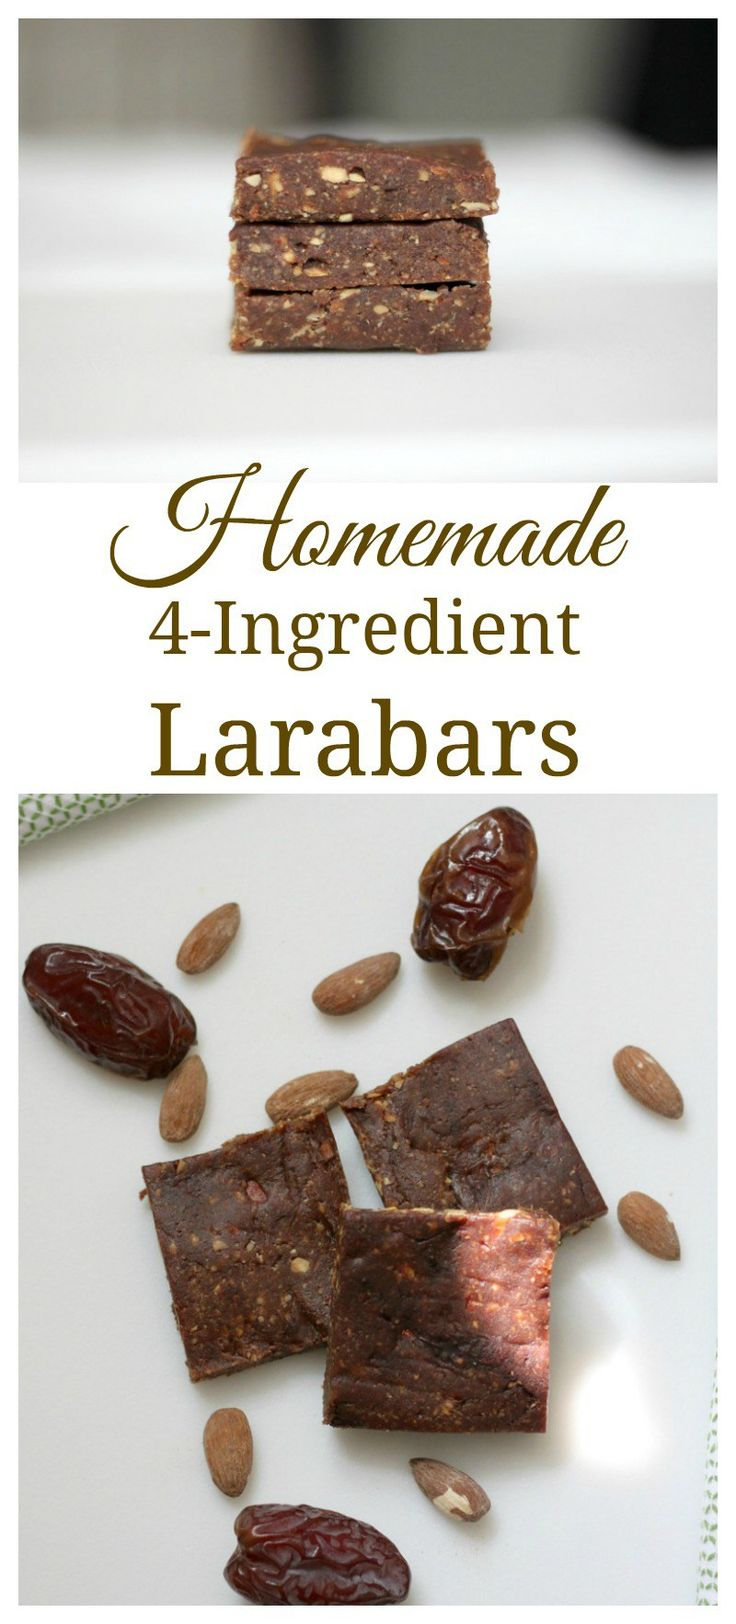 homemade Larabars are so easy to make and taste exactly like the ones you buy at the store. #homemade #cleaneating